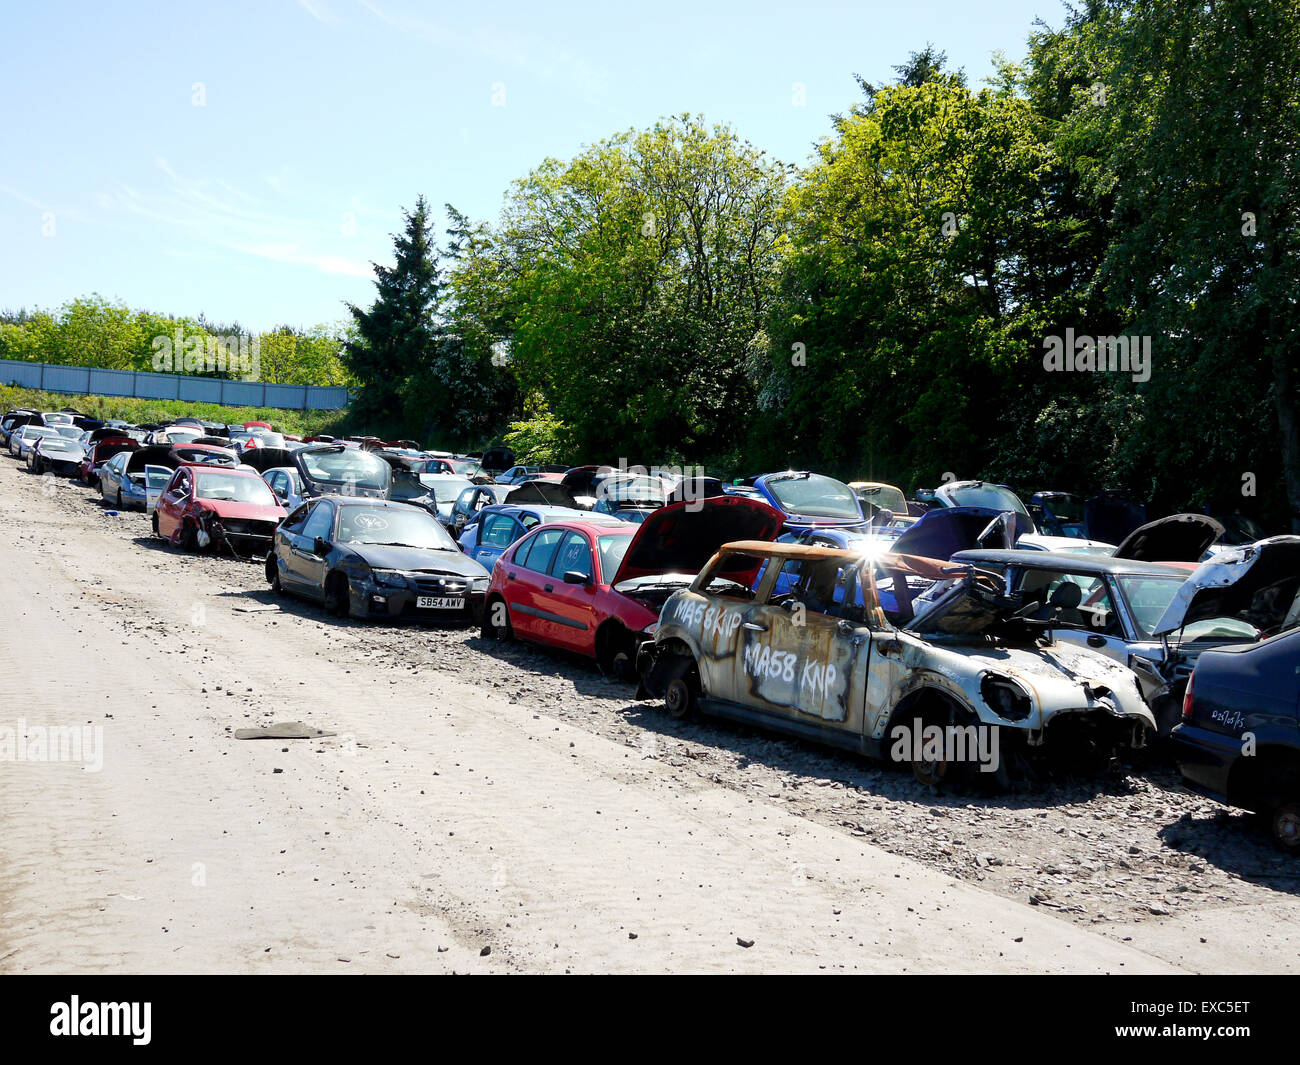 Vehicle Salvage Stock Photos & Vehicle Salvage Stock Images - Alamy